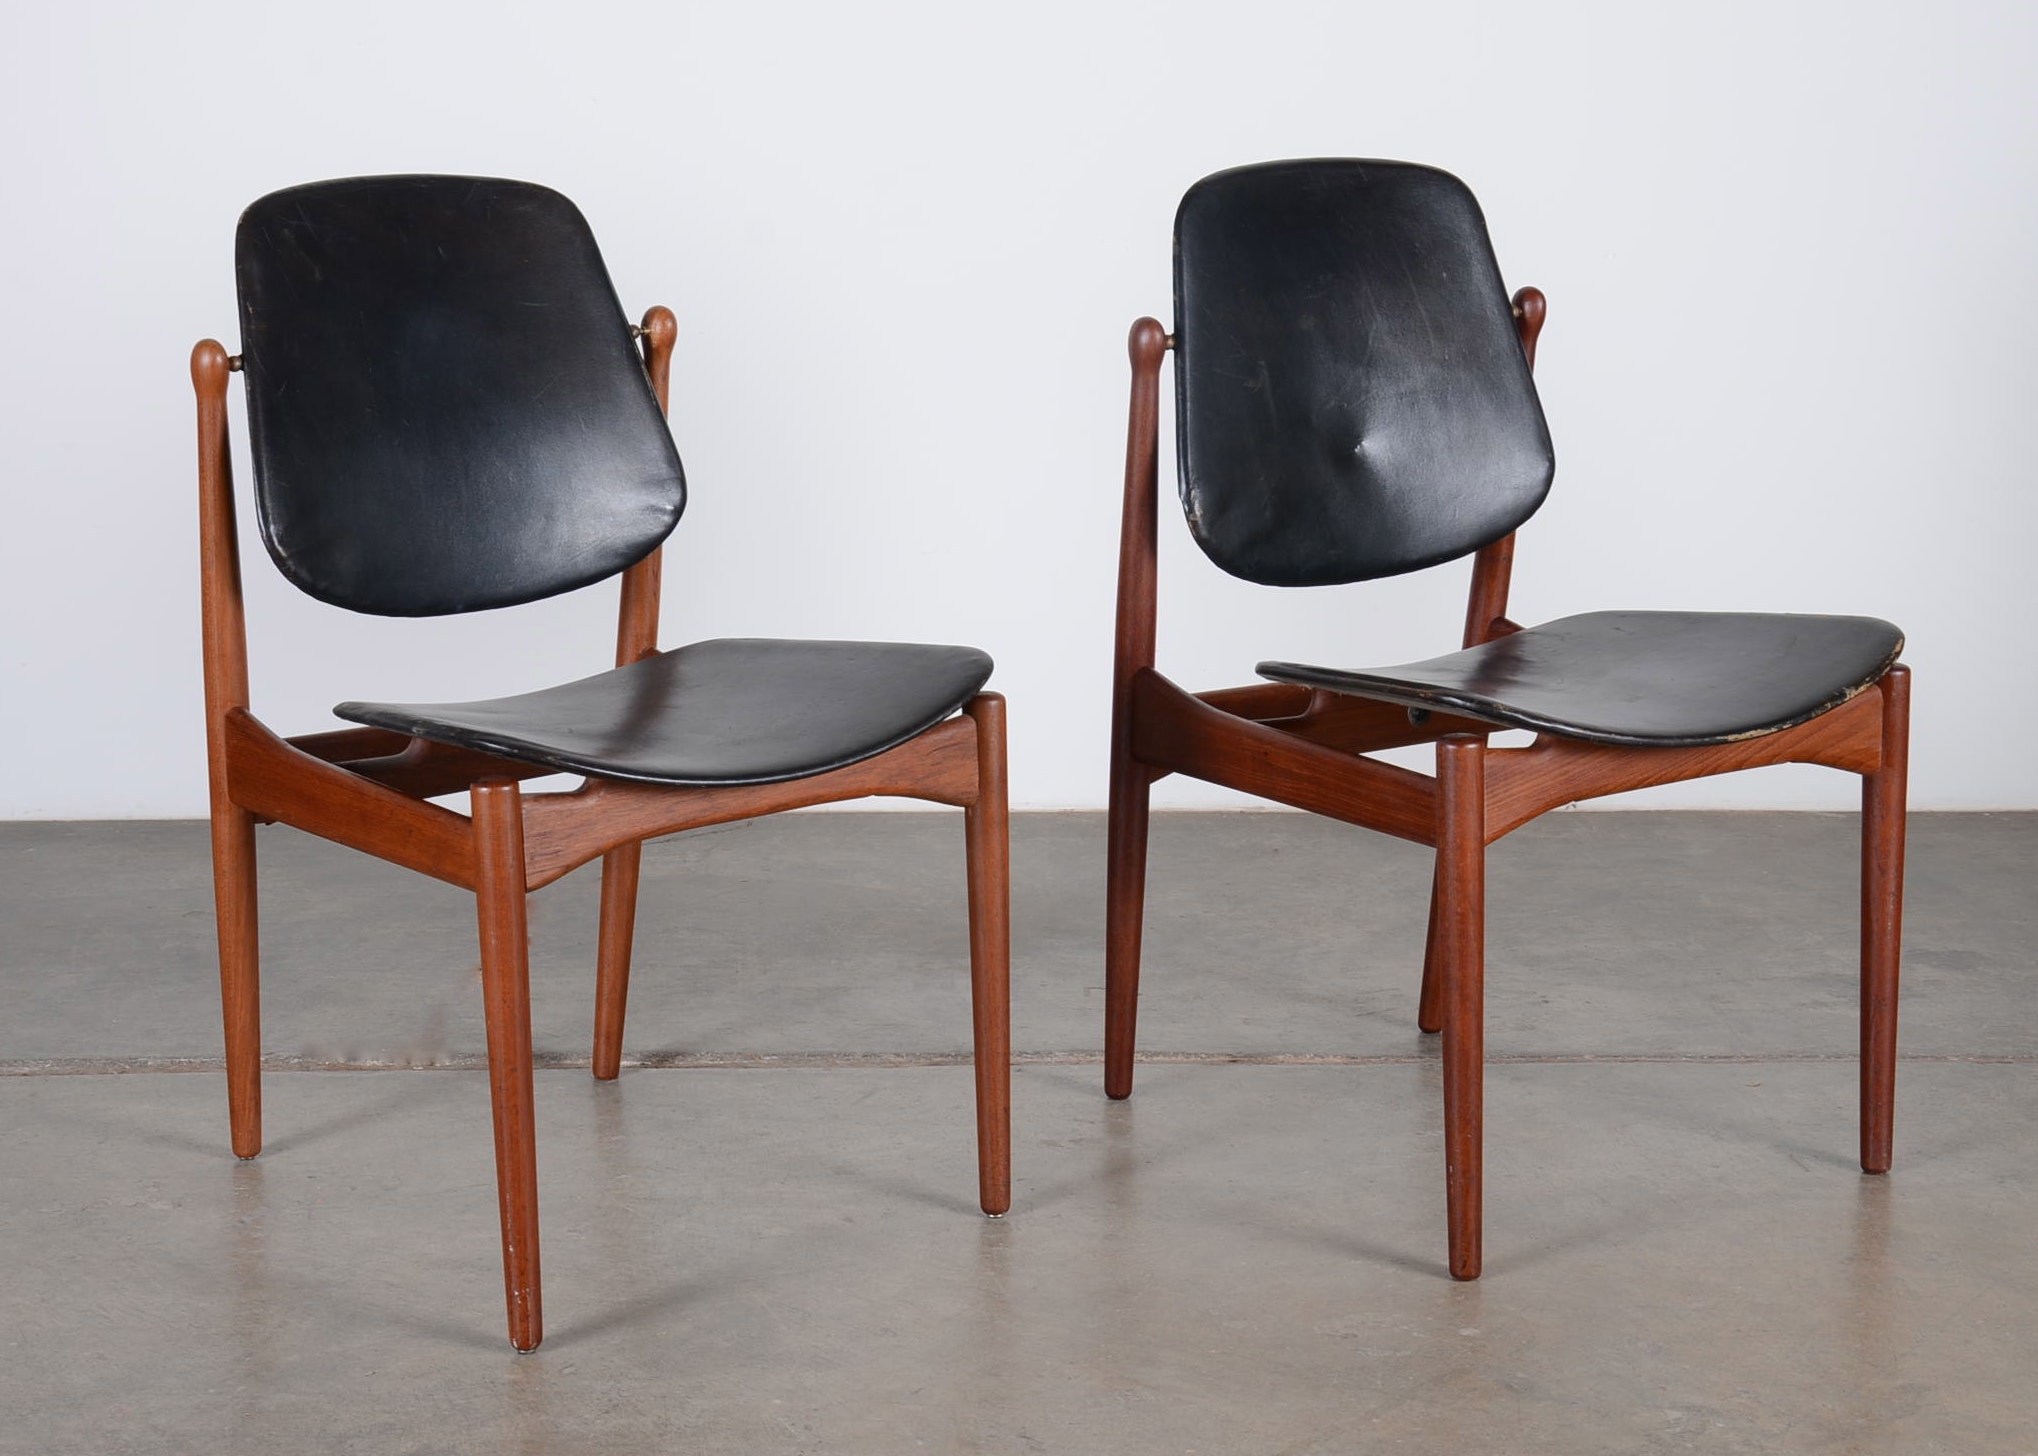 Charmant Pair Of Arne Vodder Mid Century Side Chairs ...